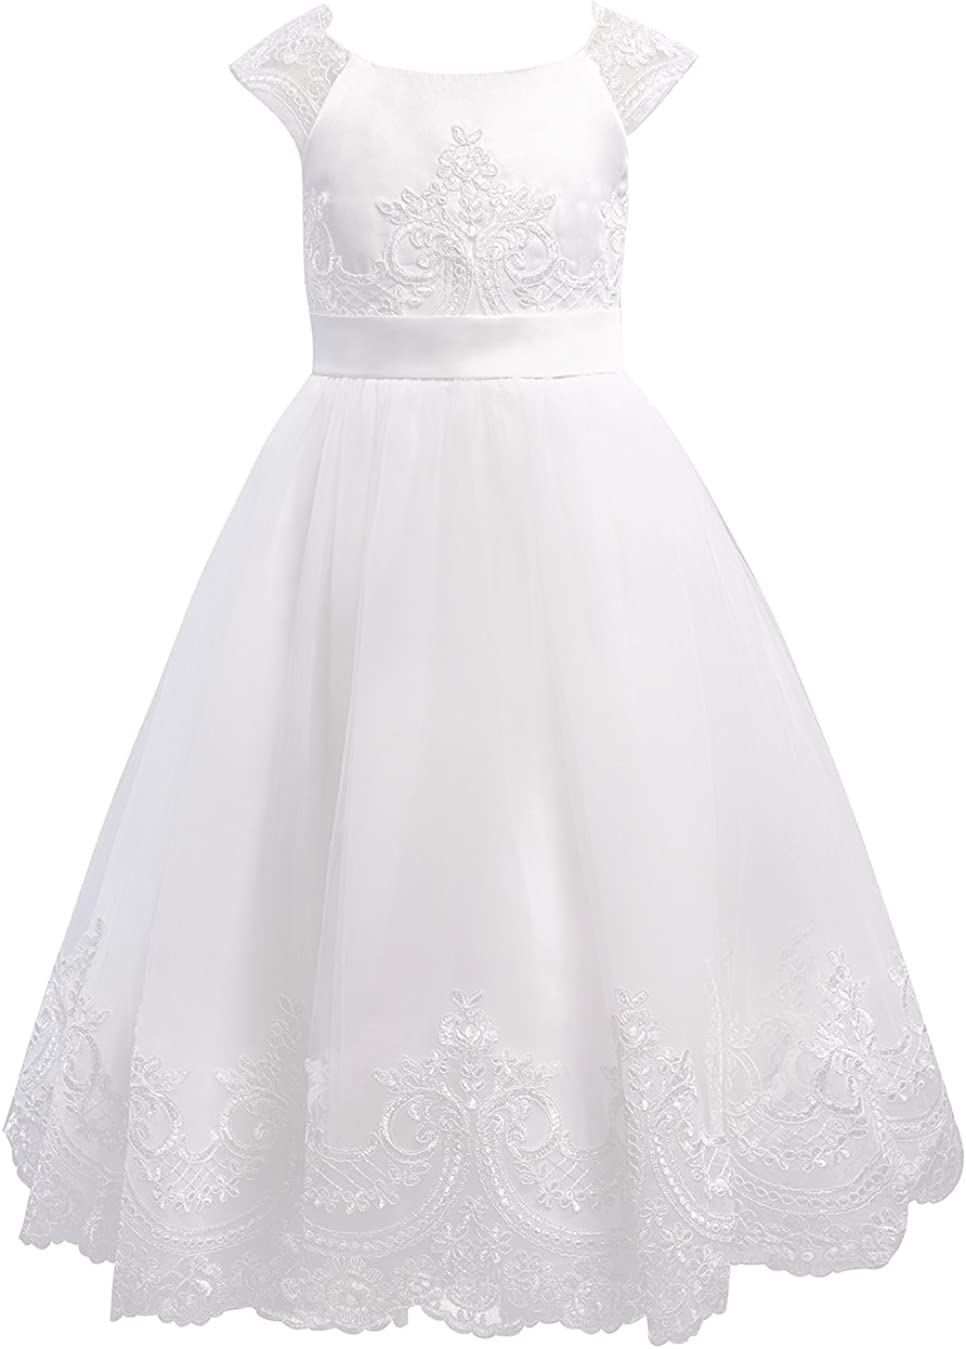 Miama Ivory Lace Tulle Cap Sleeves Dress Wedding Chr Girl Direct sale of manufacturer Flower Cheap mail order specialty store